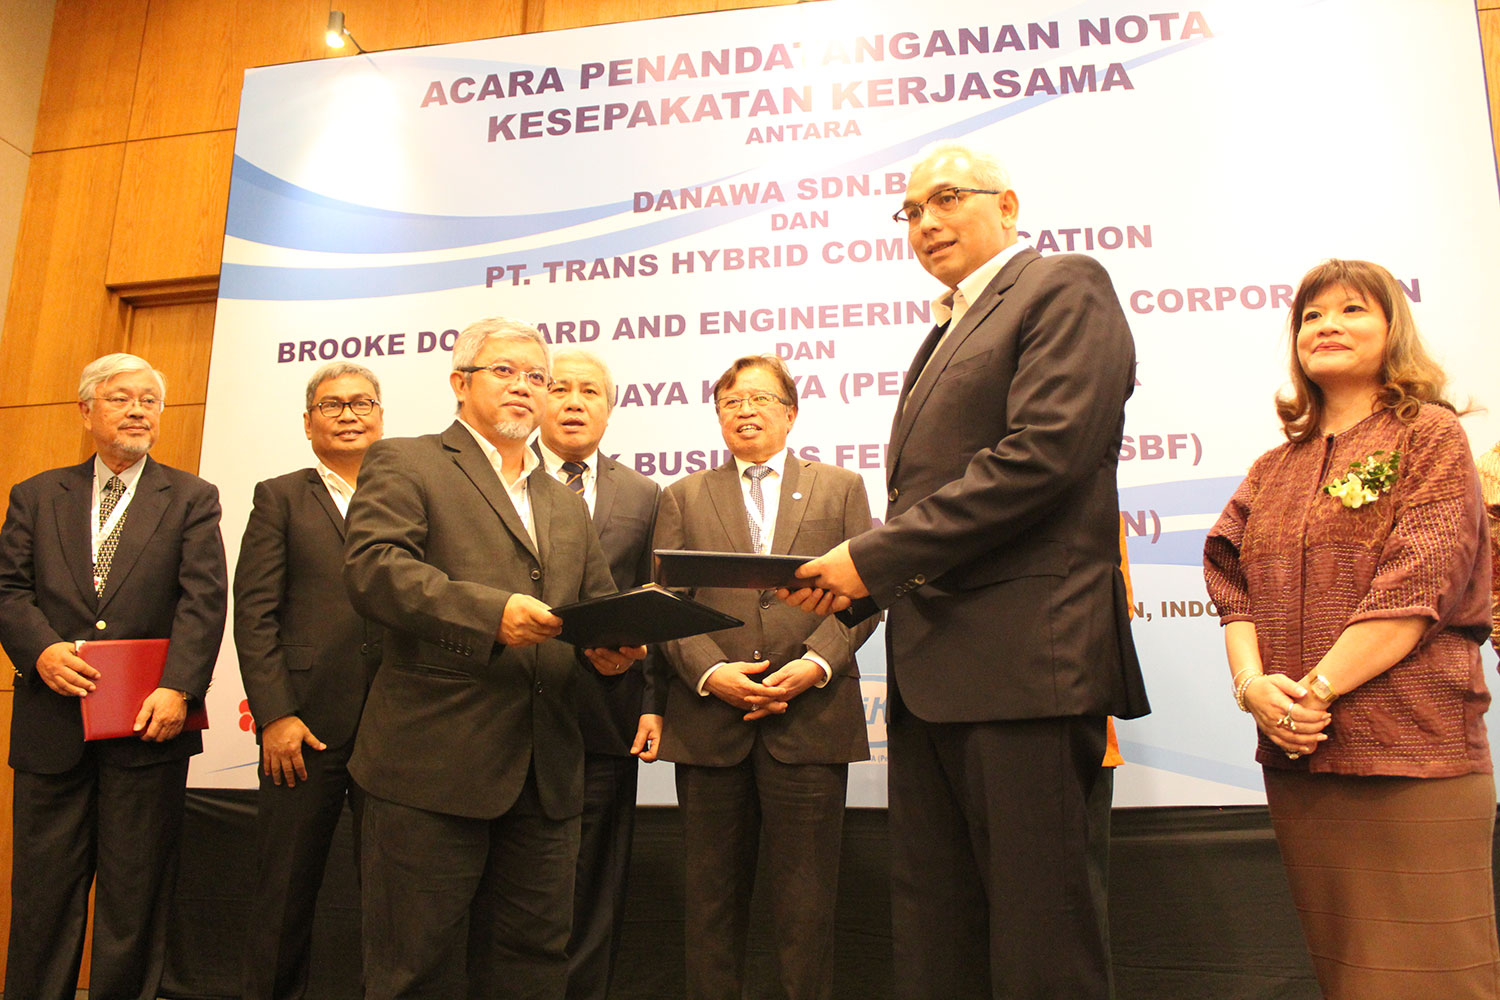 SIGNING OF MEMORANDUM OF AGREEMENT (MoA) BETWEEN  DANAWA RESOURCES SDN BHD  AND  PT TRANS HYBRID COMMUNICATION